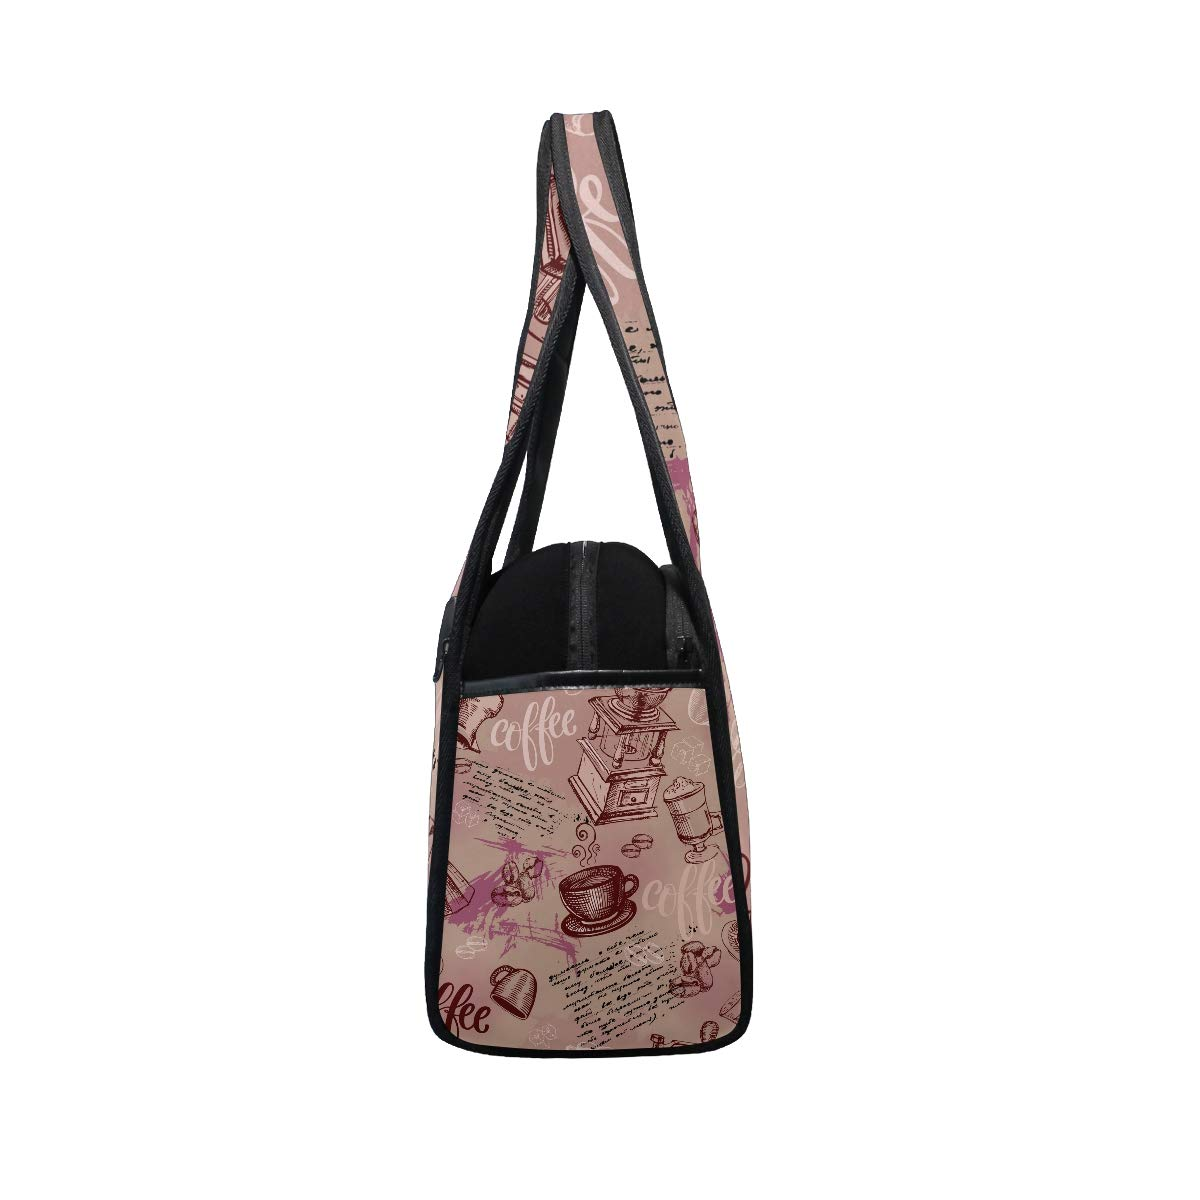 Unisex Travel Duffels Gym Bag Coffee Beans And Cups Pattern Canvas Weekender Bag Shoulder Bag Totes bags